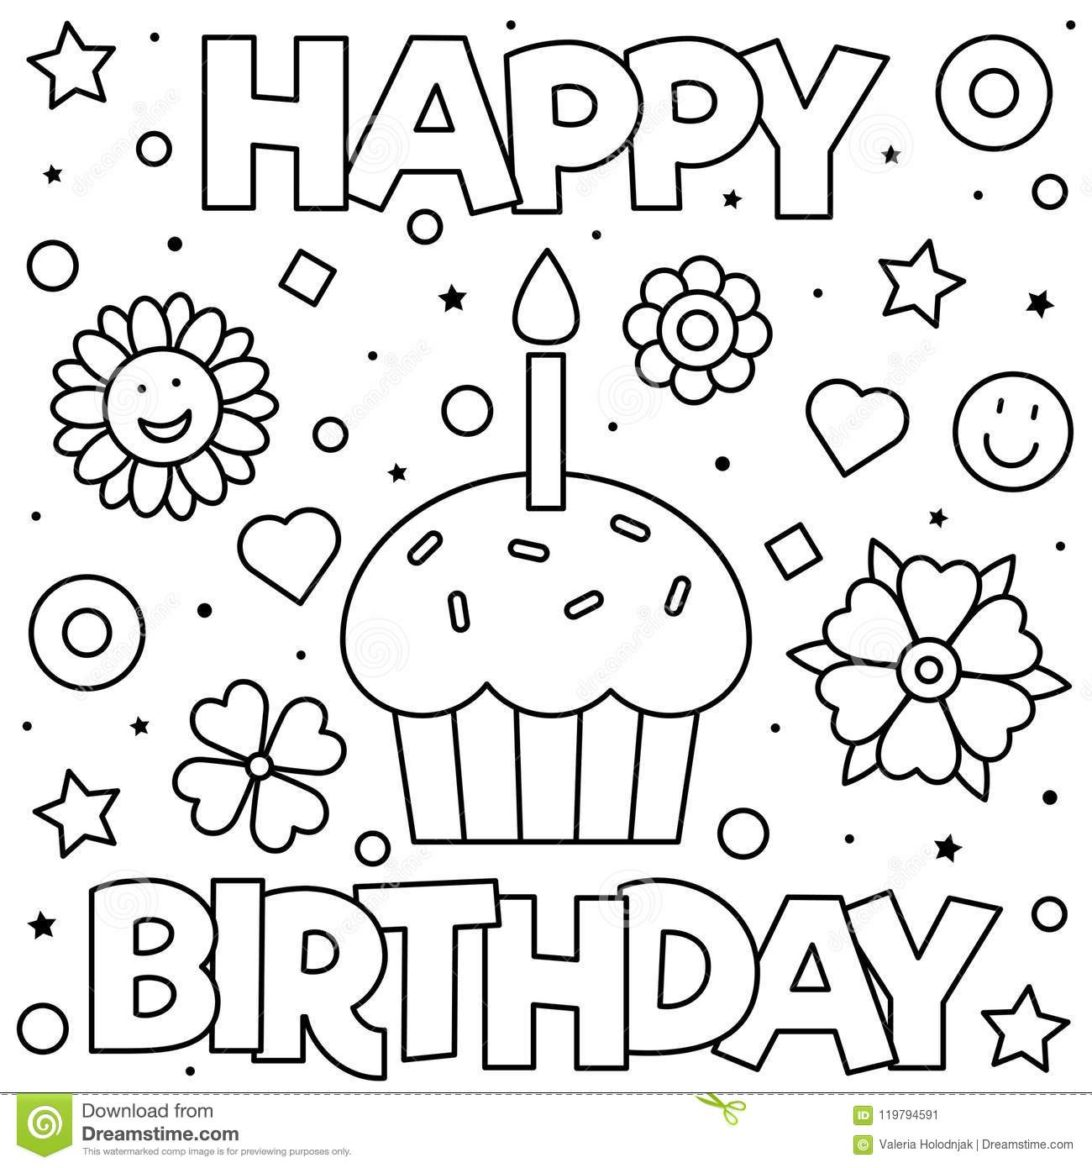 happy 7th birthday coloring pages coloring pages 43 astonishing happy birthday coloring happy birthday 7th coloring pages